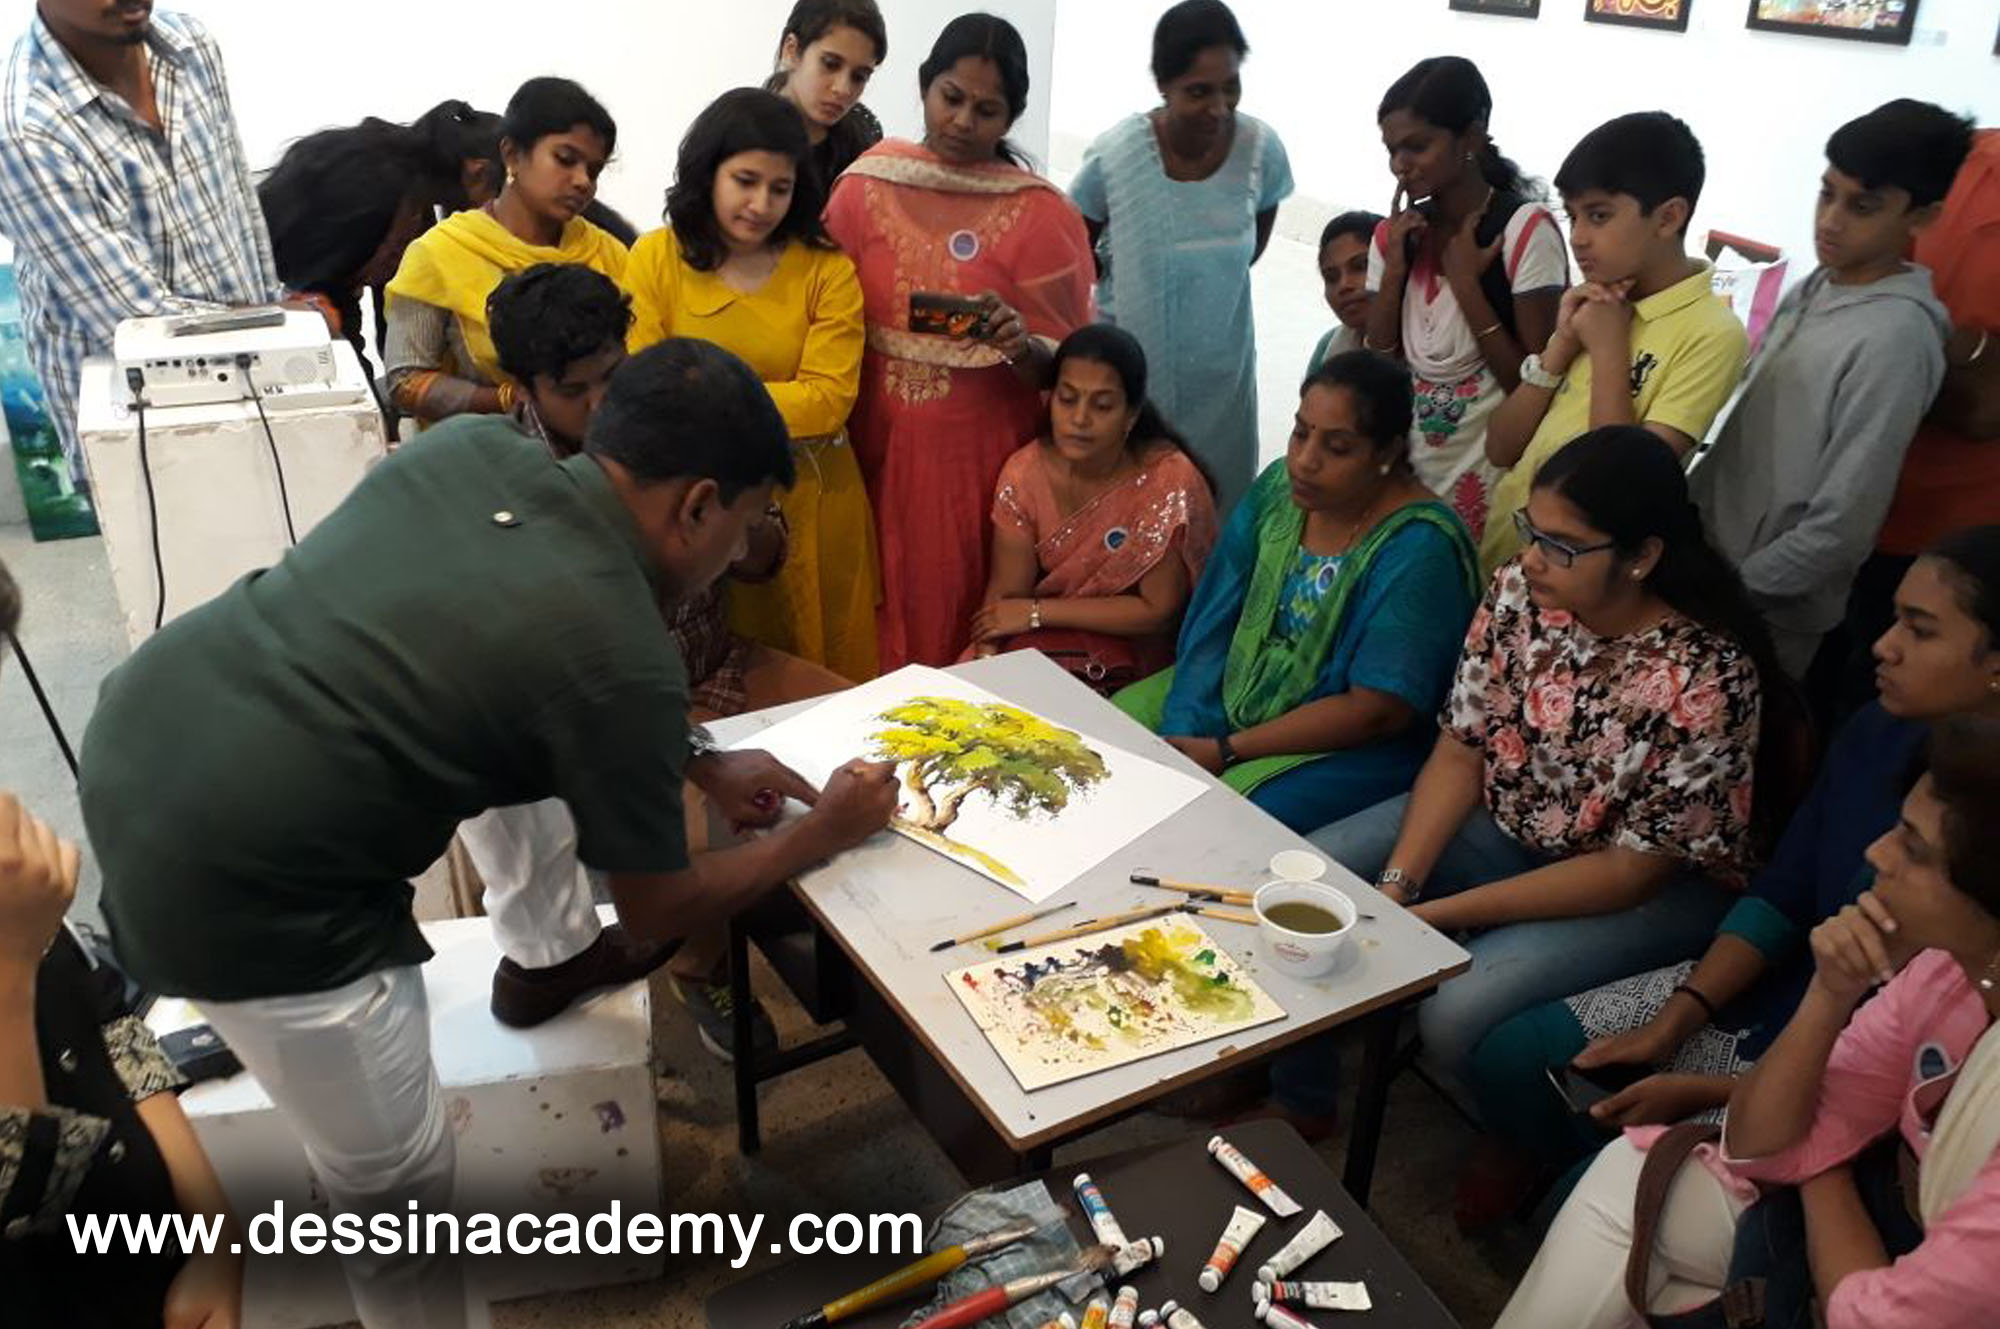 Dessin School of arts Event Gallery 6, charcoal Drawing Coaching For Kids in chennaiDessin School of Arts